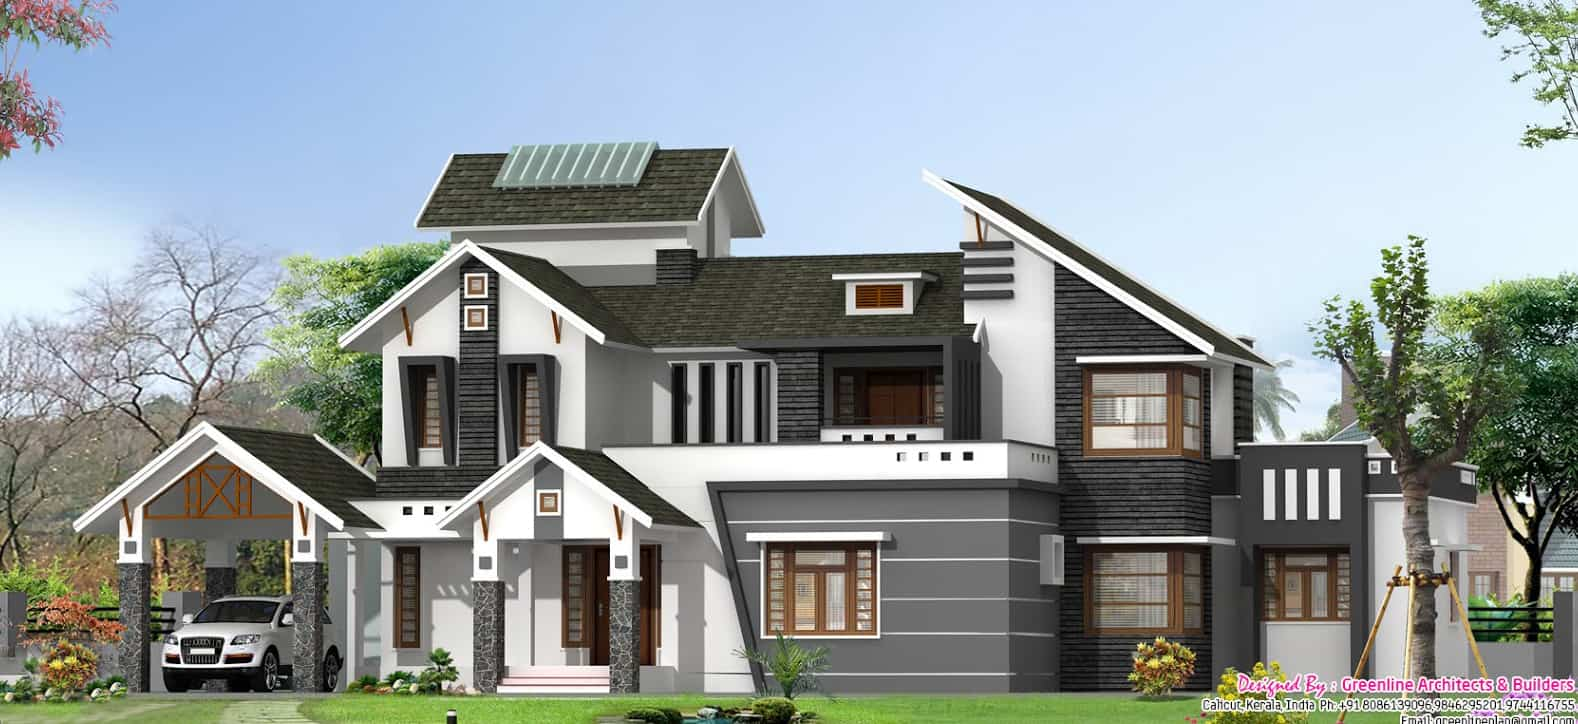 Unique house designs keralahouseplanner for New style home design